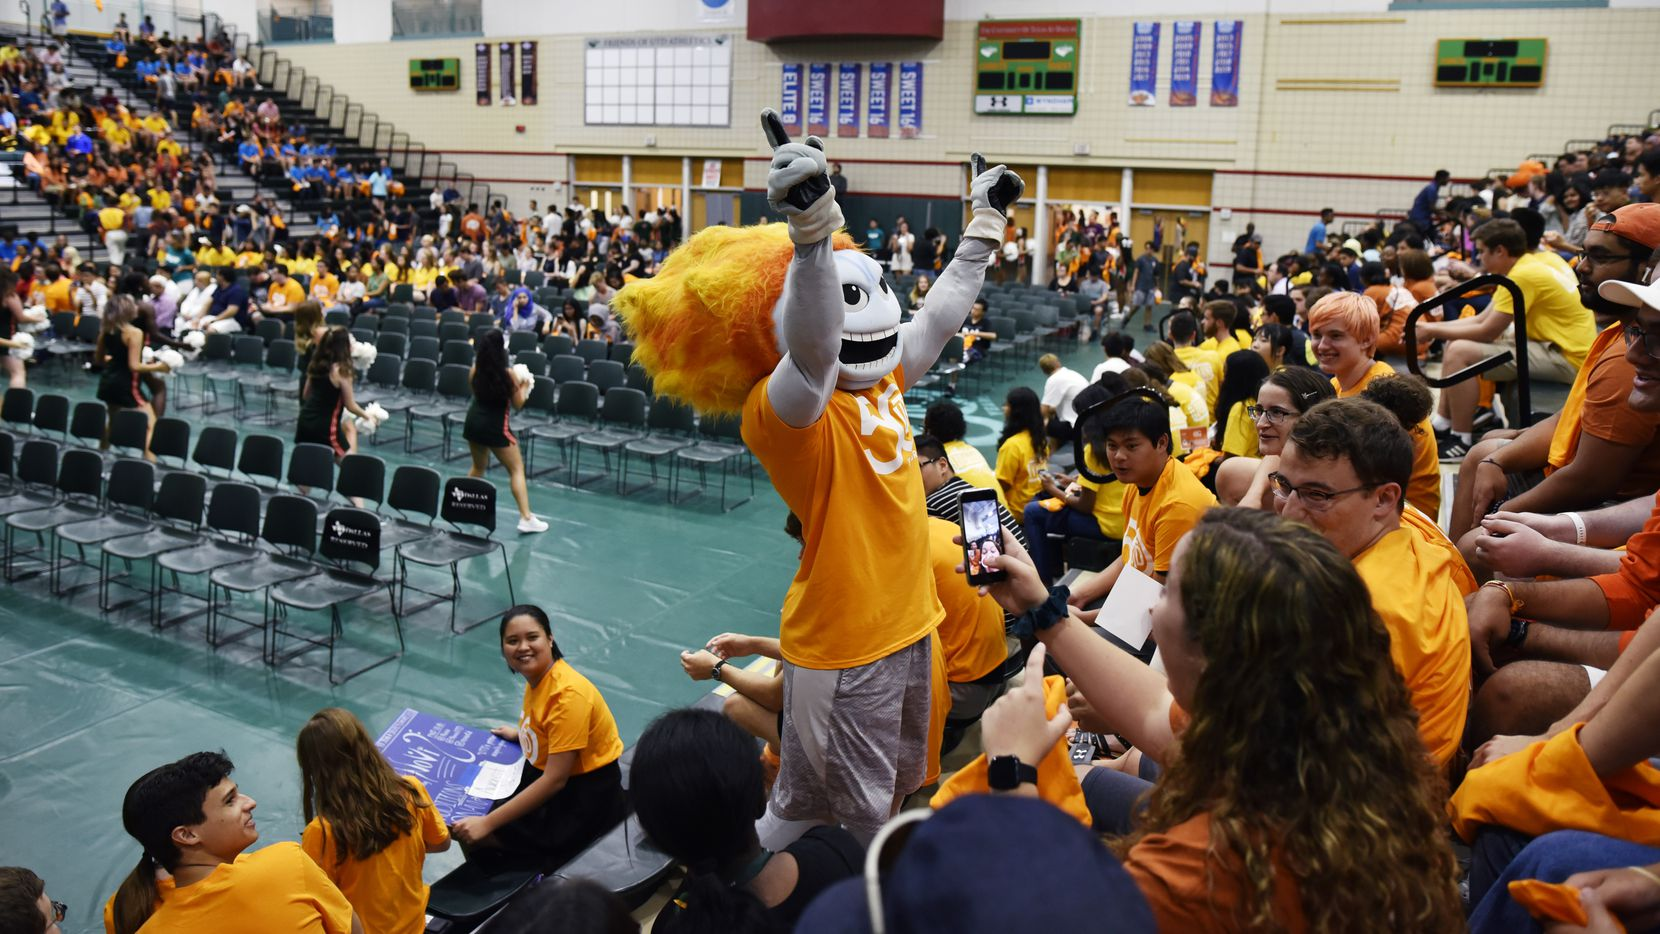 "Temoc, the UTD mascot, leads a happy birthday sing-along for one of the freshman in attendance at a new student convocation celebrating the 50th anniversary of the University of Texas at Dallas, Sunday Aug. 18, 2019 in Richardson. ""Temoc"" is comet spelled backwards."